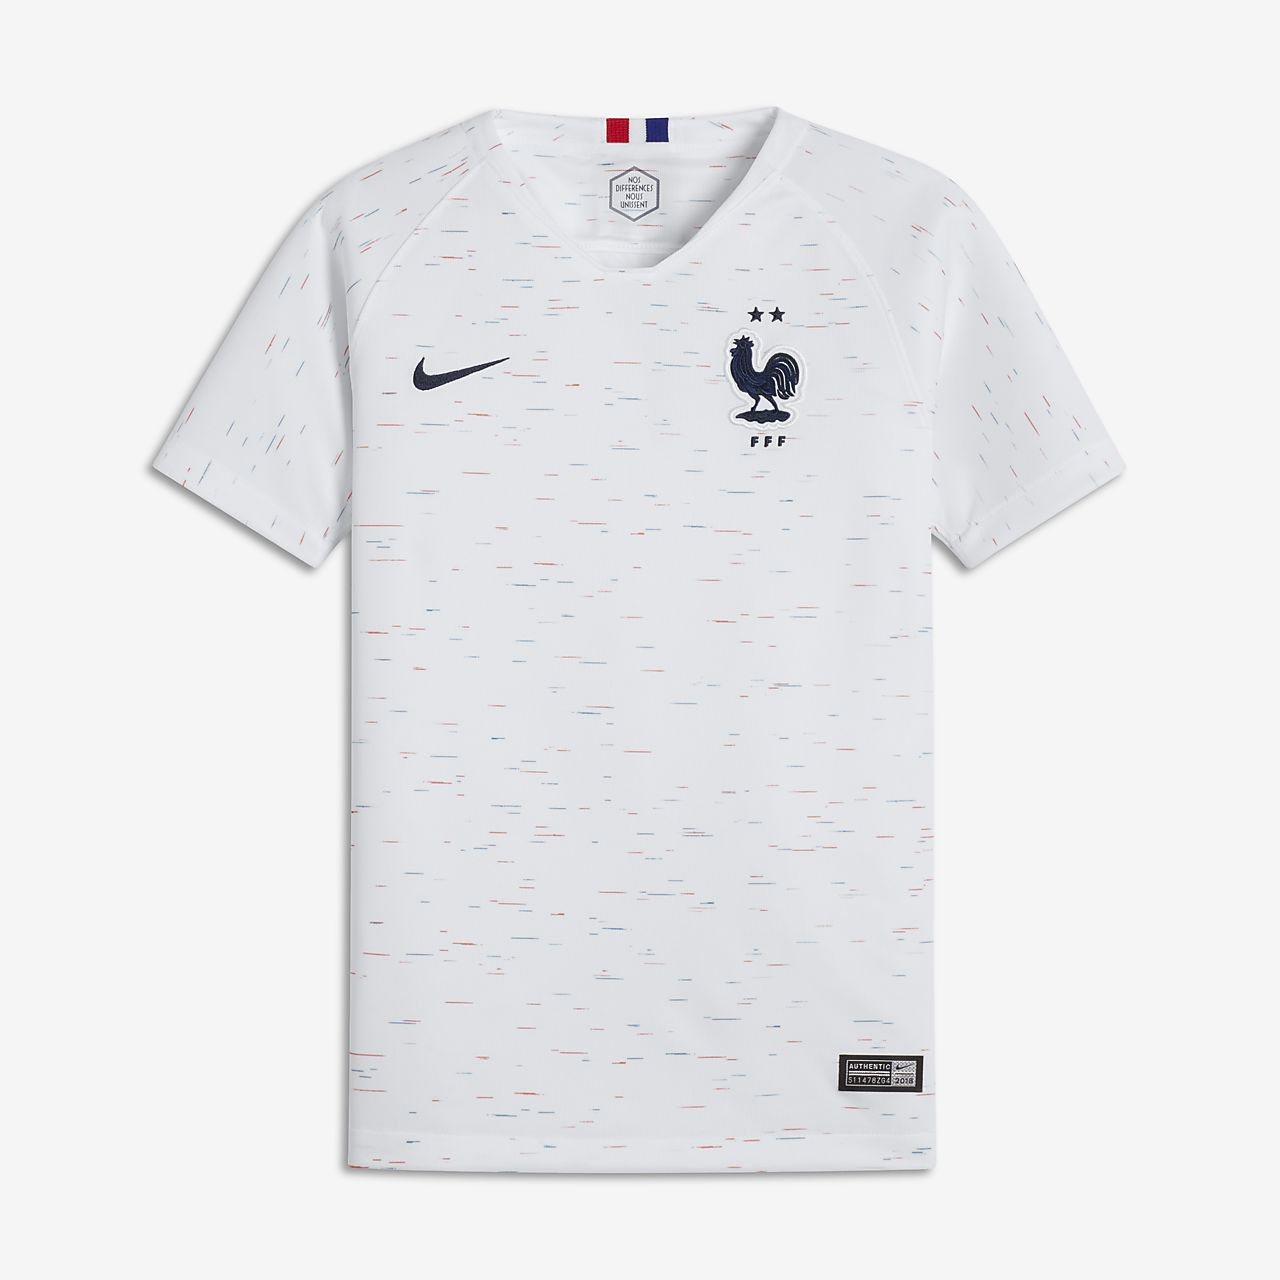 Âgé 2018 Away Enfant Plus Maillot Football Stadium De Fff Pour rdxQBCoeW